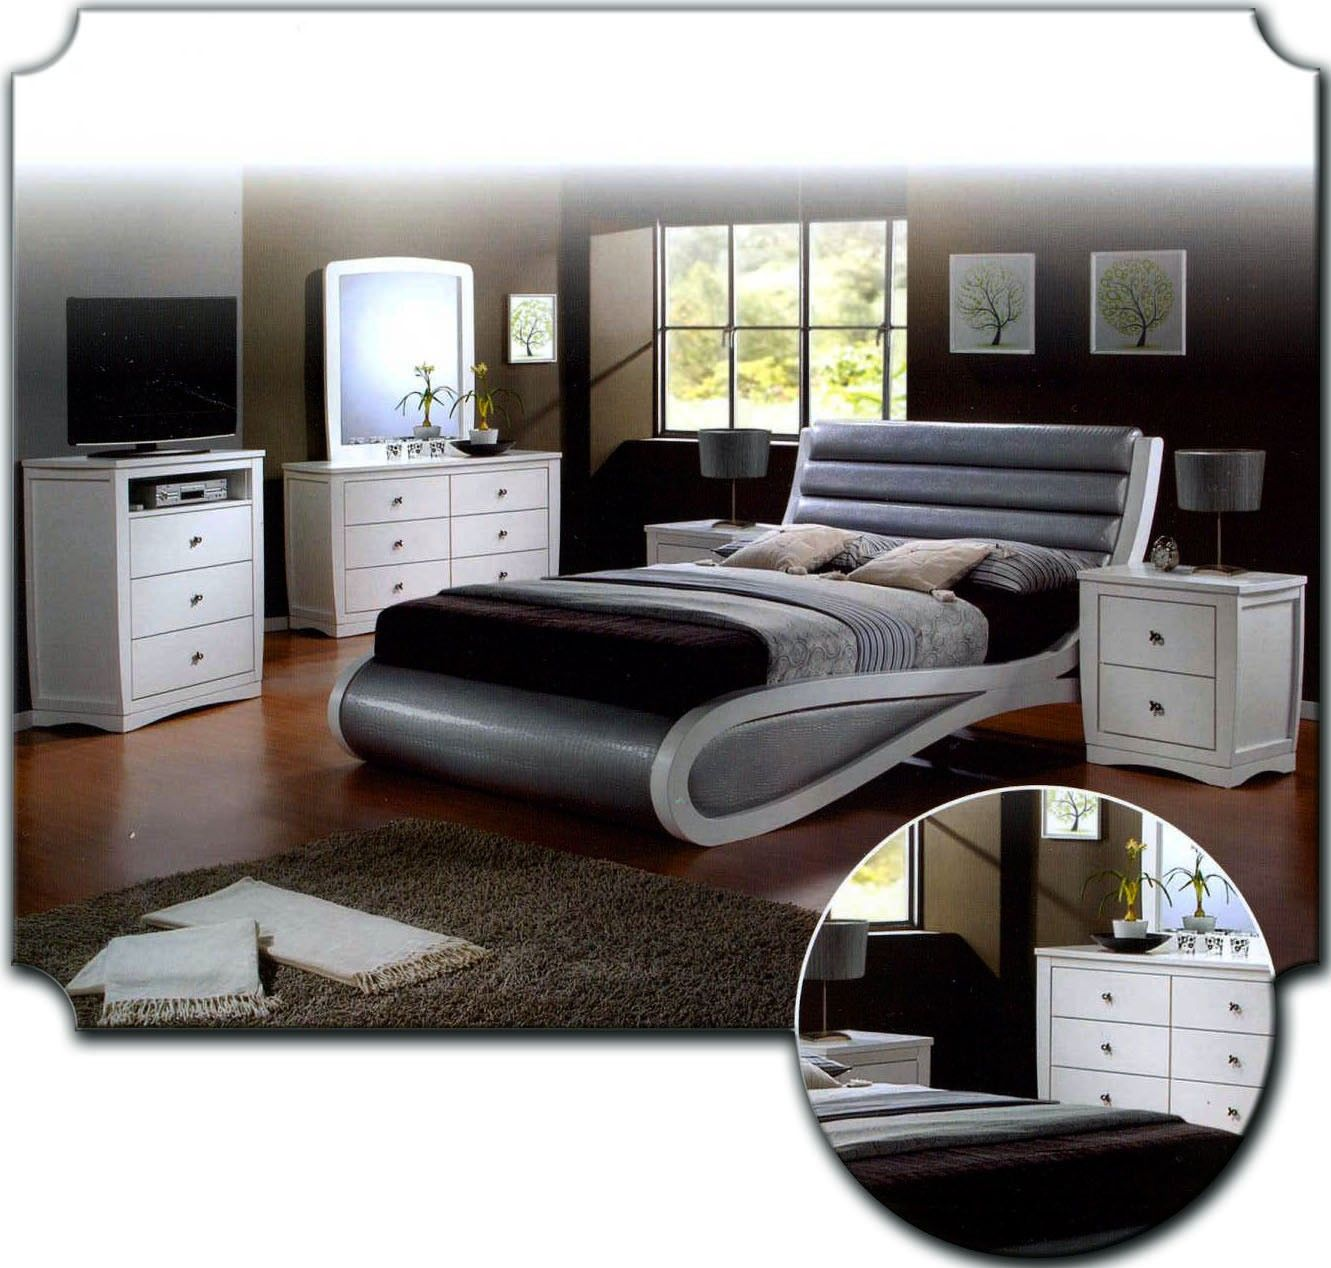 Bedroom-Ideas-For-Teenage-Guys-Teen-Platform-Bedroom-Sets ... on Teenage Room Colors For Guys  id=19603